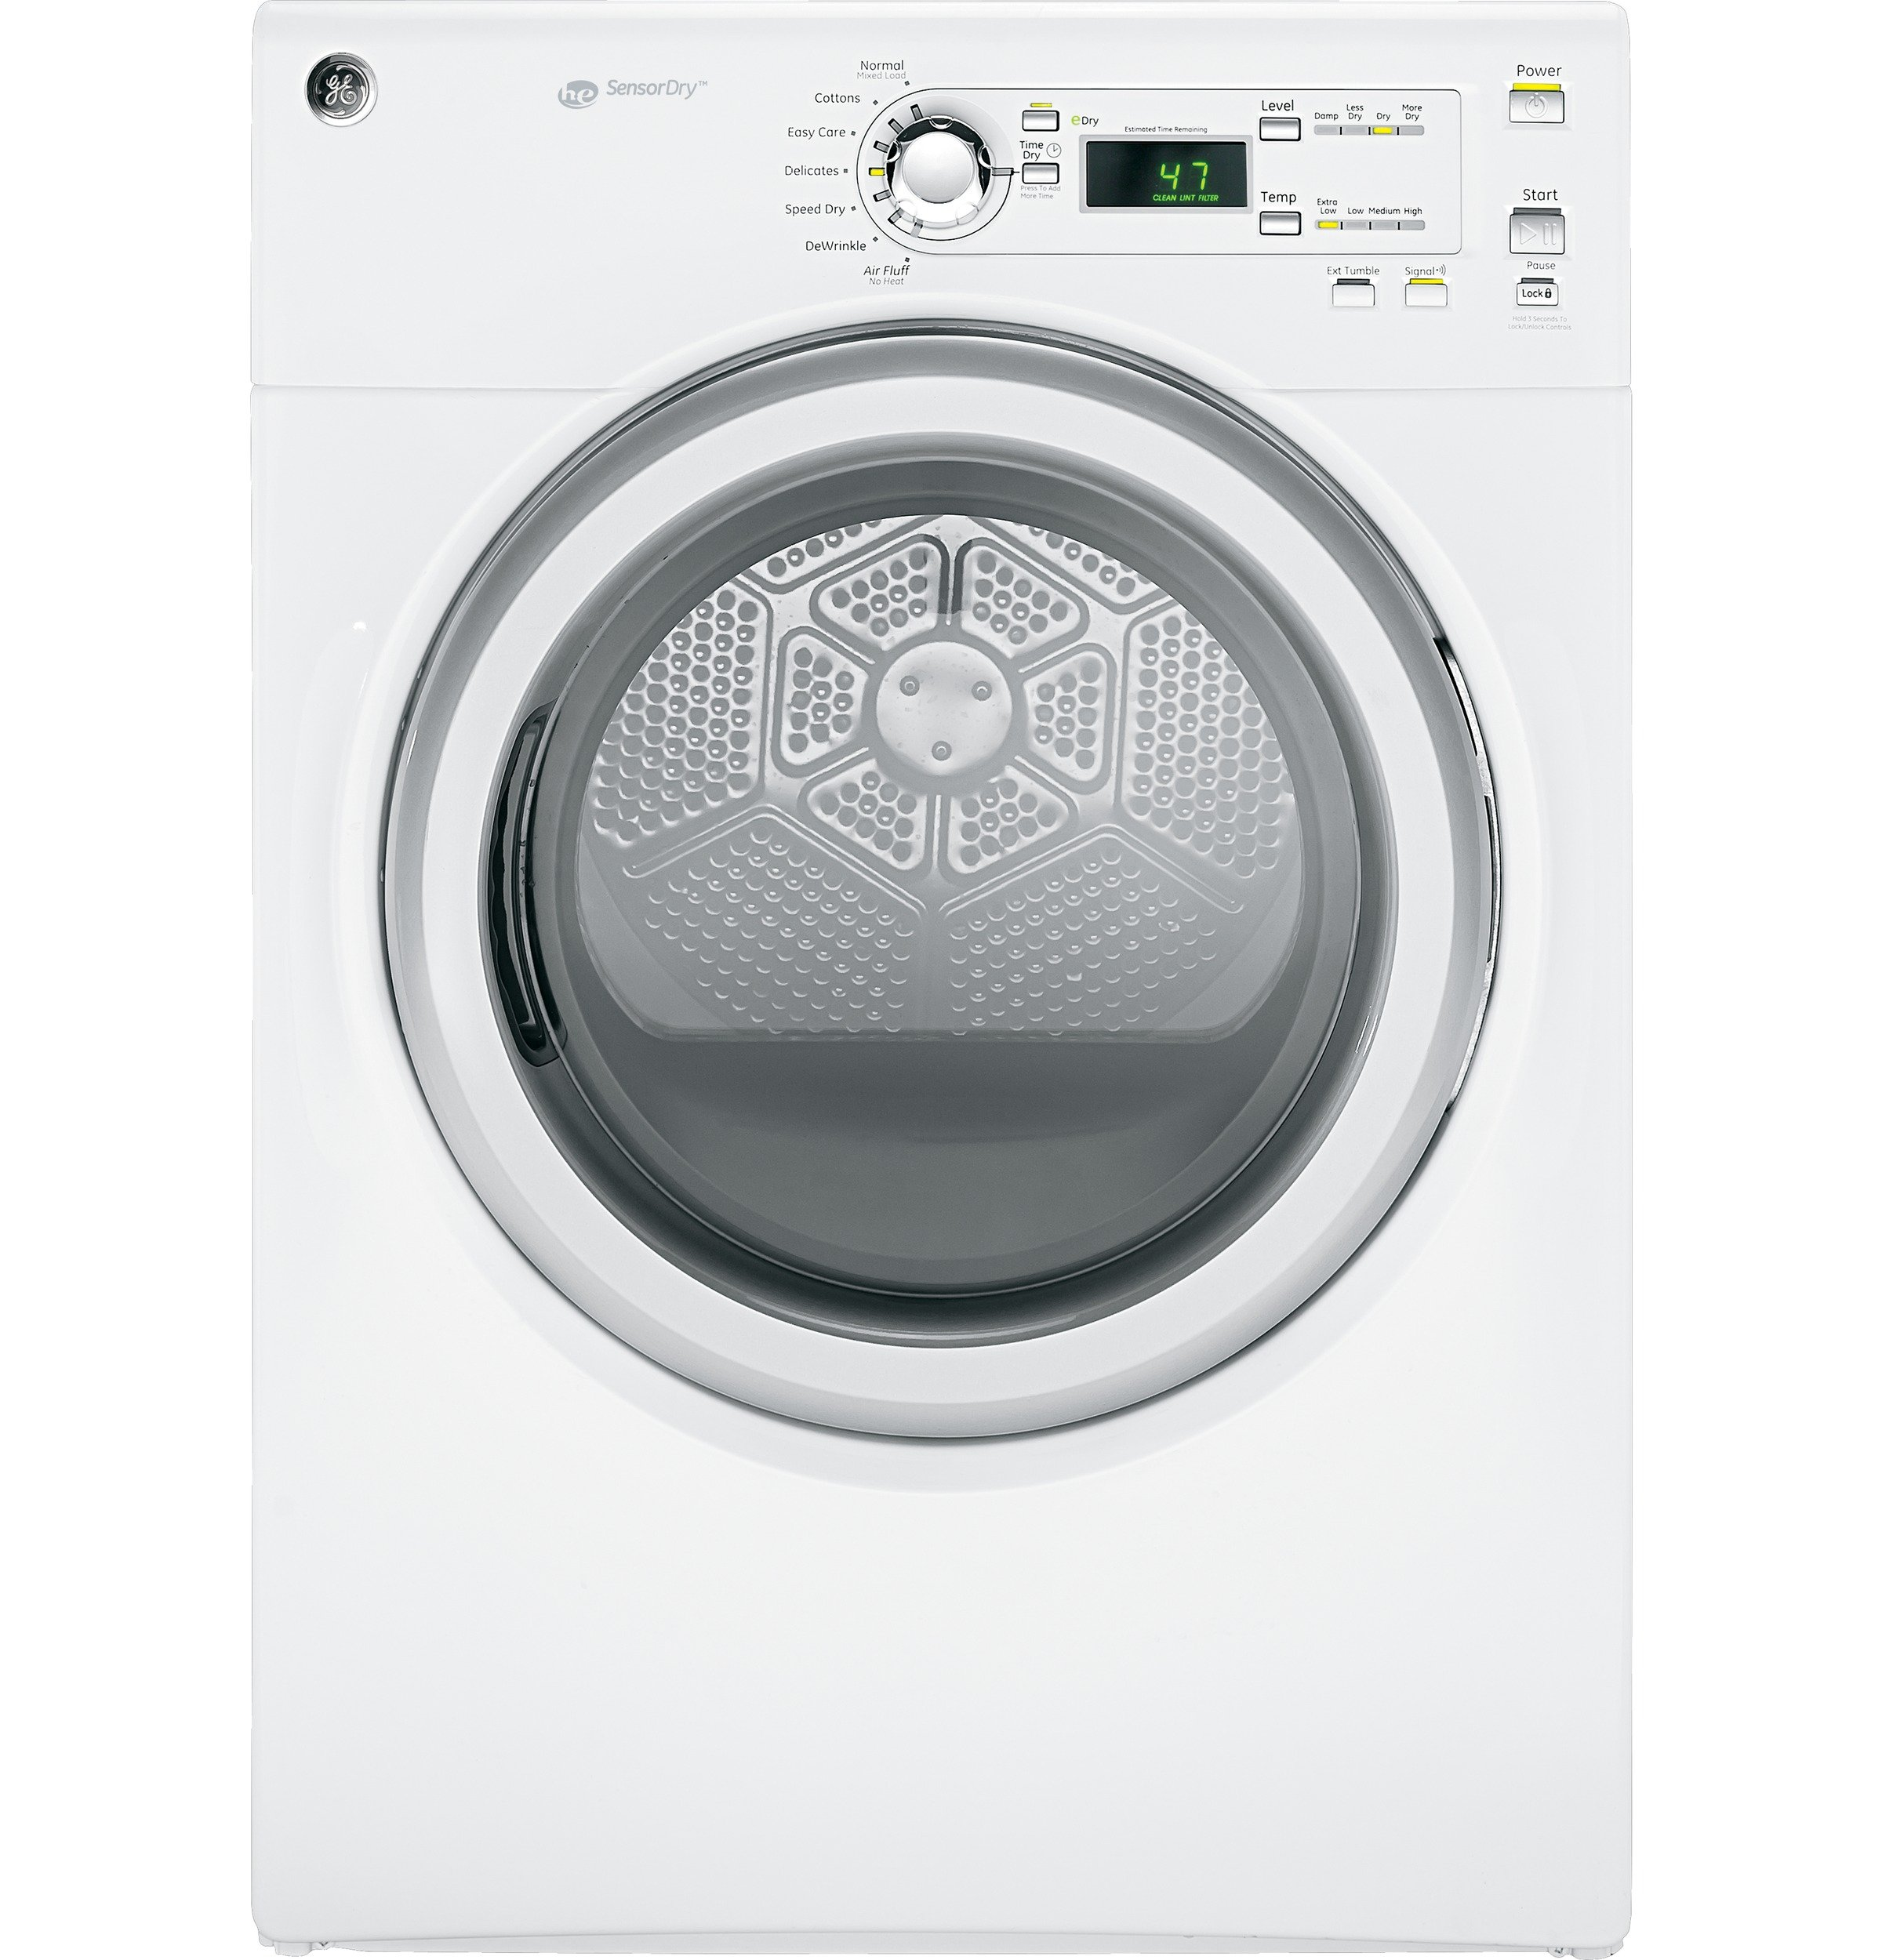 GE GFDN120EDWW 7 Cu.Ft. Electric Dryer with 7 Cycles and Reversible Door, White